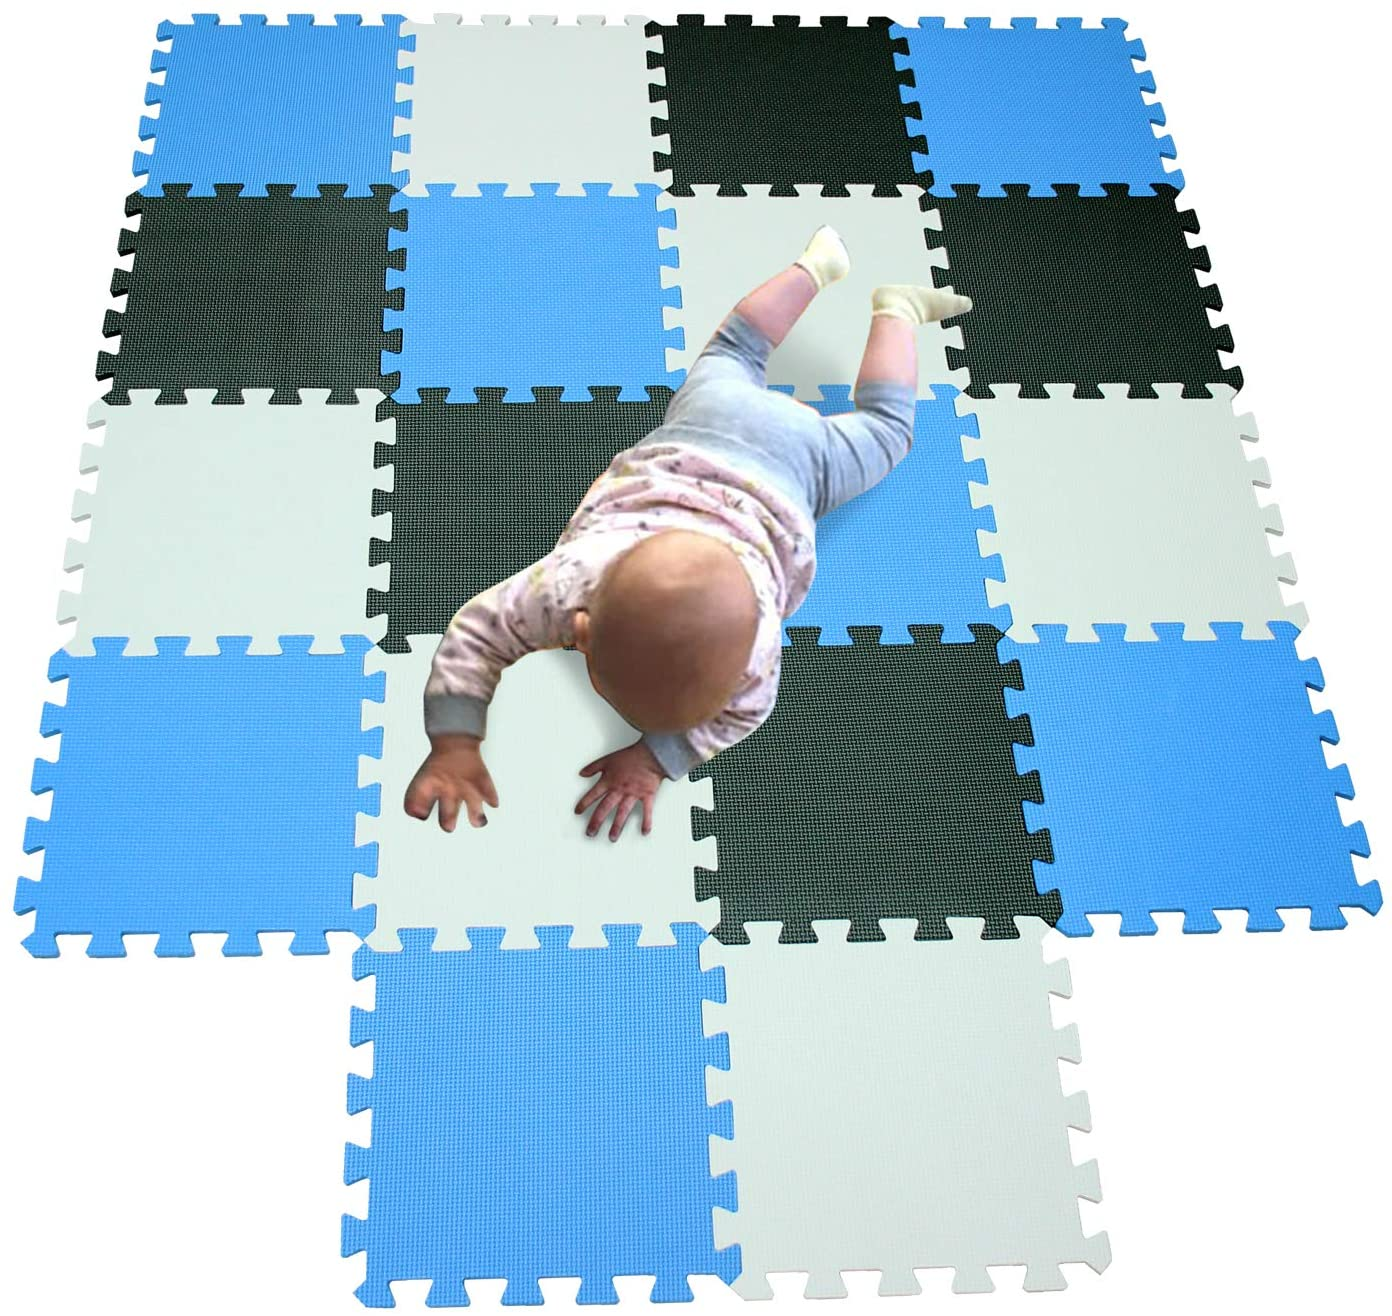 MQIAOHAM Baby Foam Floor Tiles mats Puzzle 2D Shapes playmats for Children Sensory Toys Baby Workout Jigsaw Board Portable Foldable Soft Play mat Interlocking Gym White Black Blue 101104107